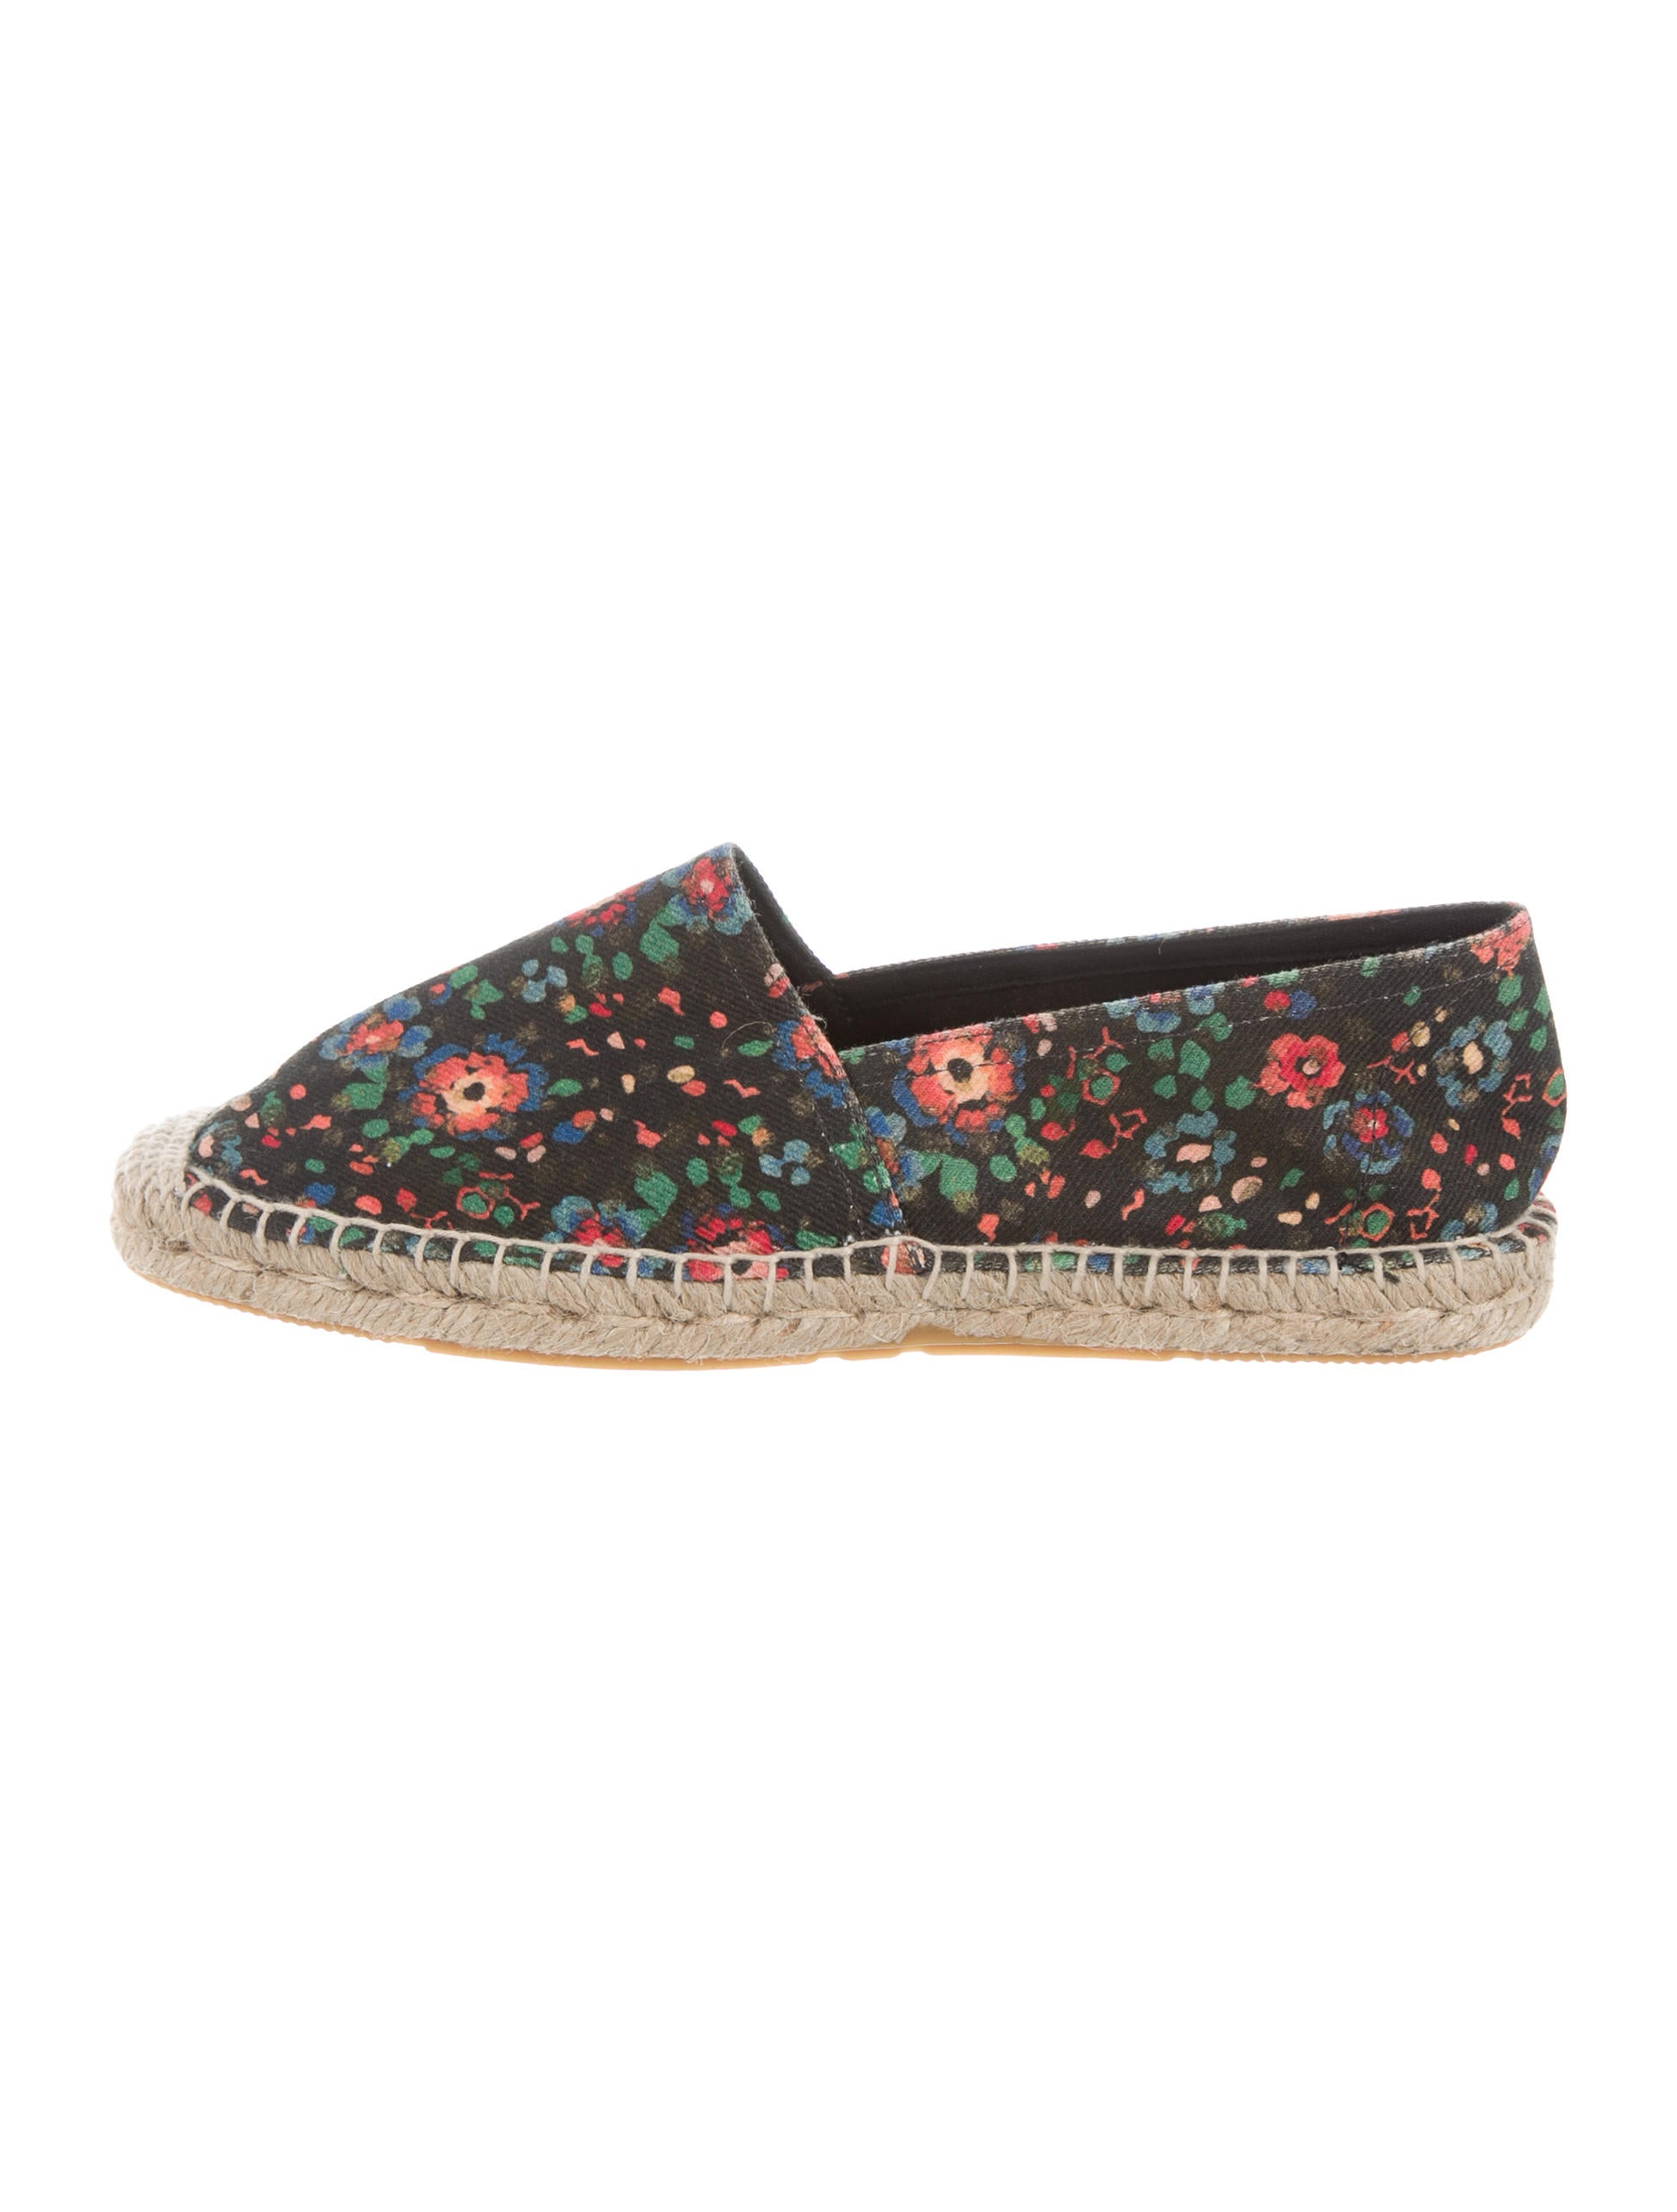 discount codes shopping online cheap sale fashionable Étoile Isabel Marant Floral Print Round-Toe Espadrilles clearance find great free shipping new styles outlet locations 1OWDclA